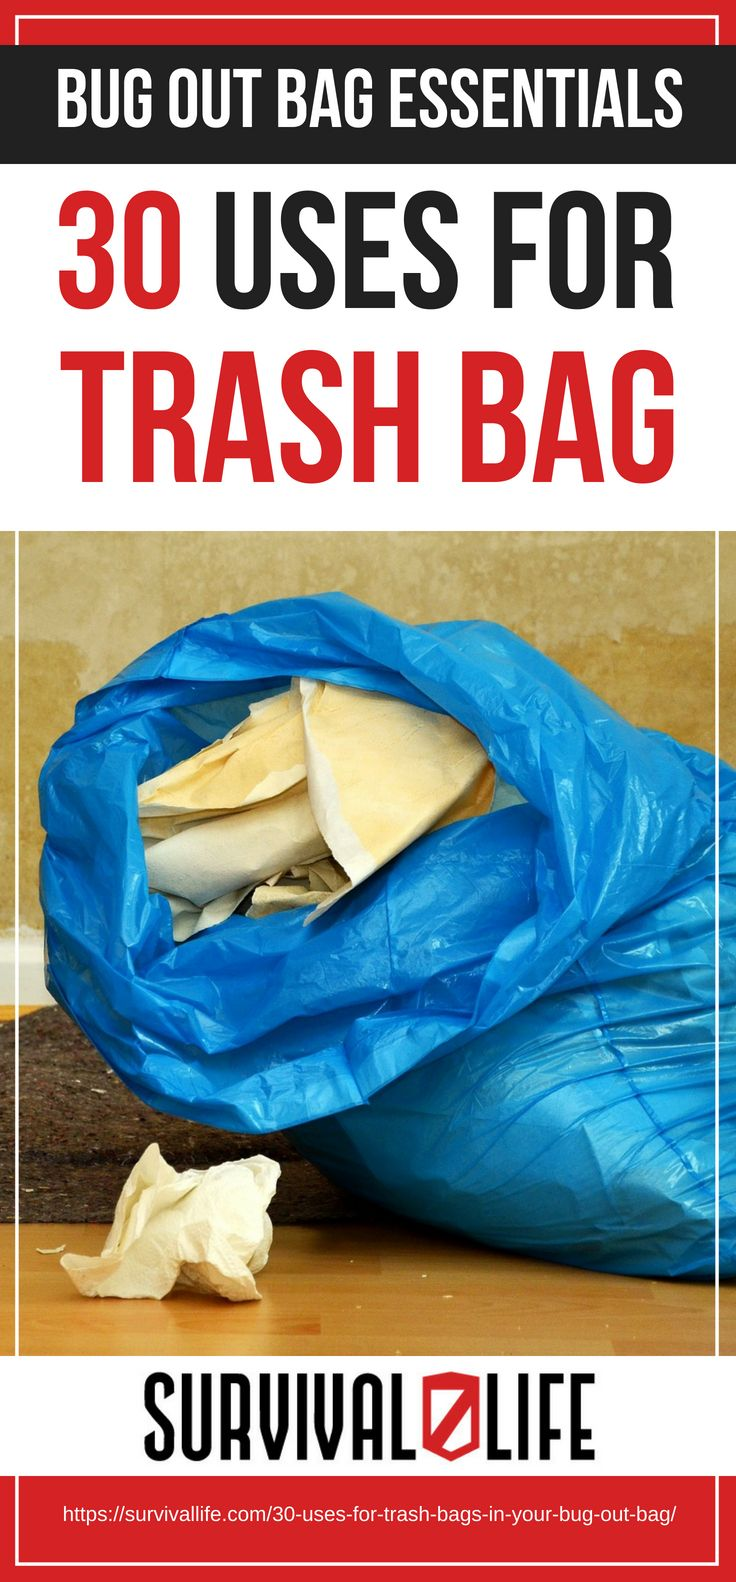 Uses For Trash Bags | Bug Out Bag Essentials | https://survivallife.com/30-uses-for-trash-bags-in-your-bug-out-bag/